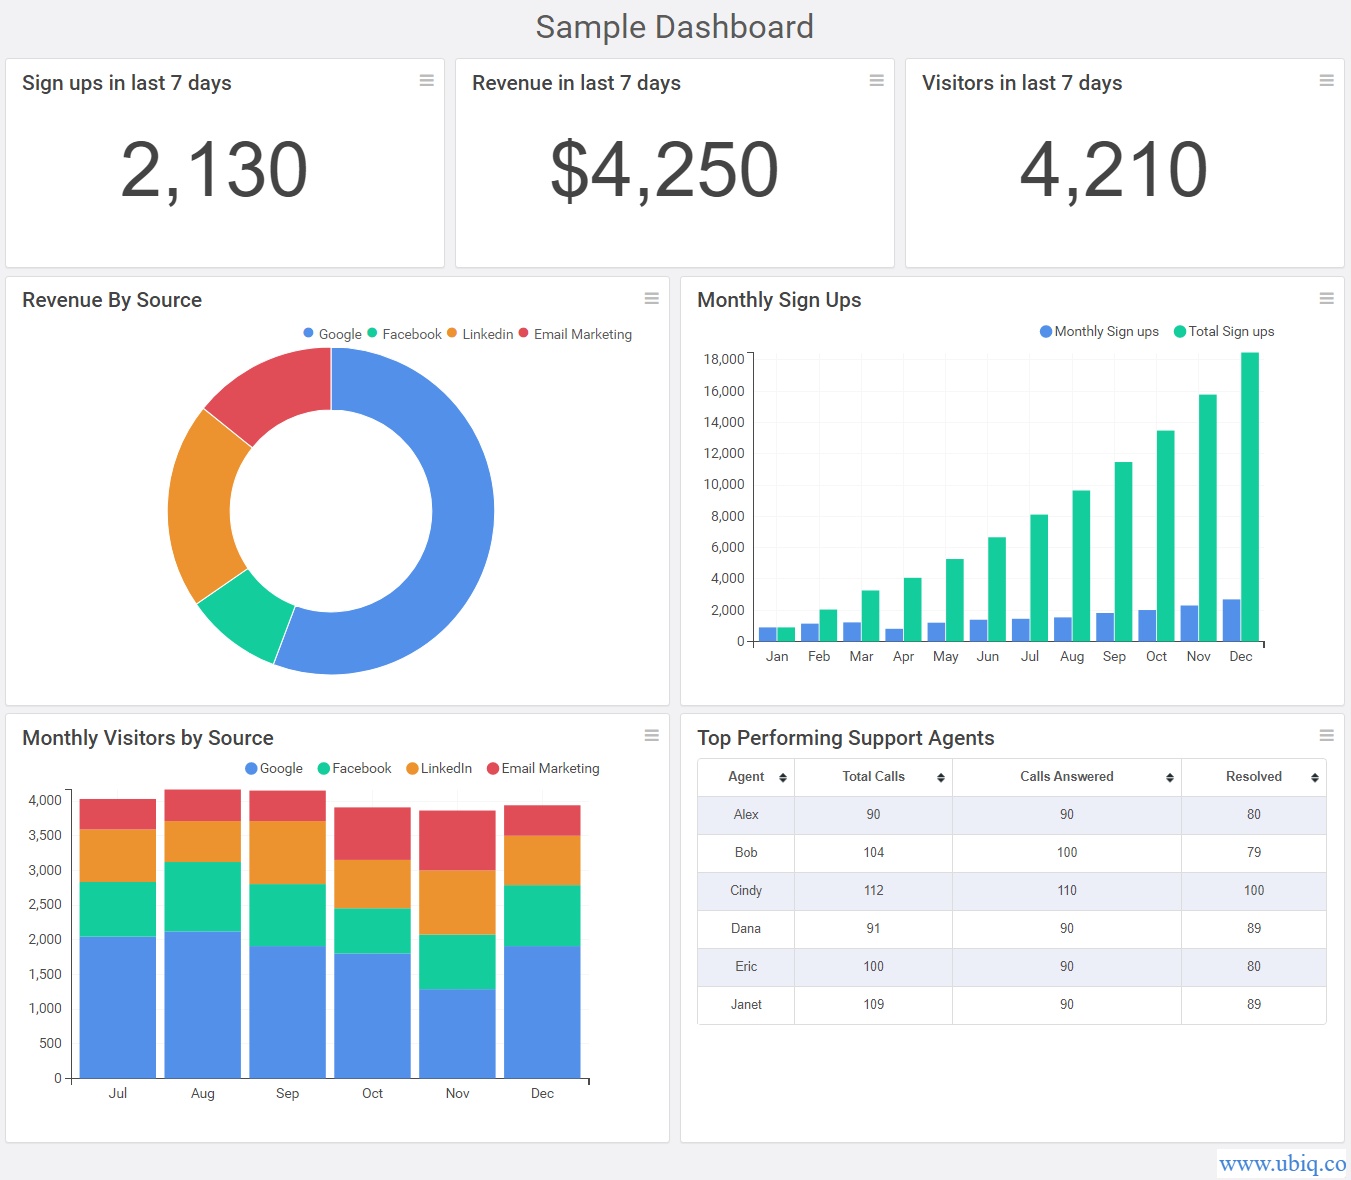 sample dashboard created using ubiq analytics